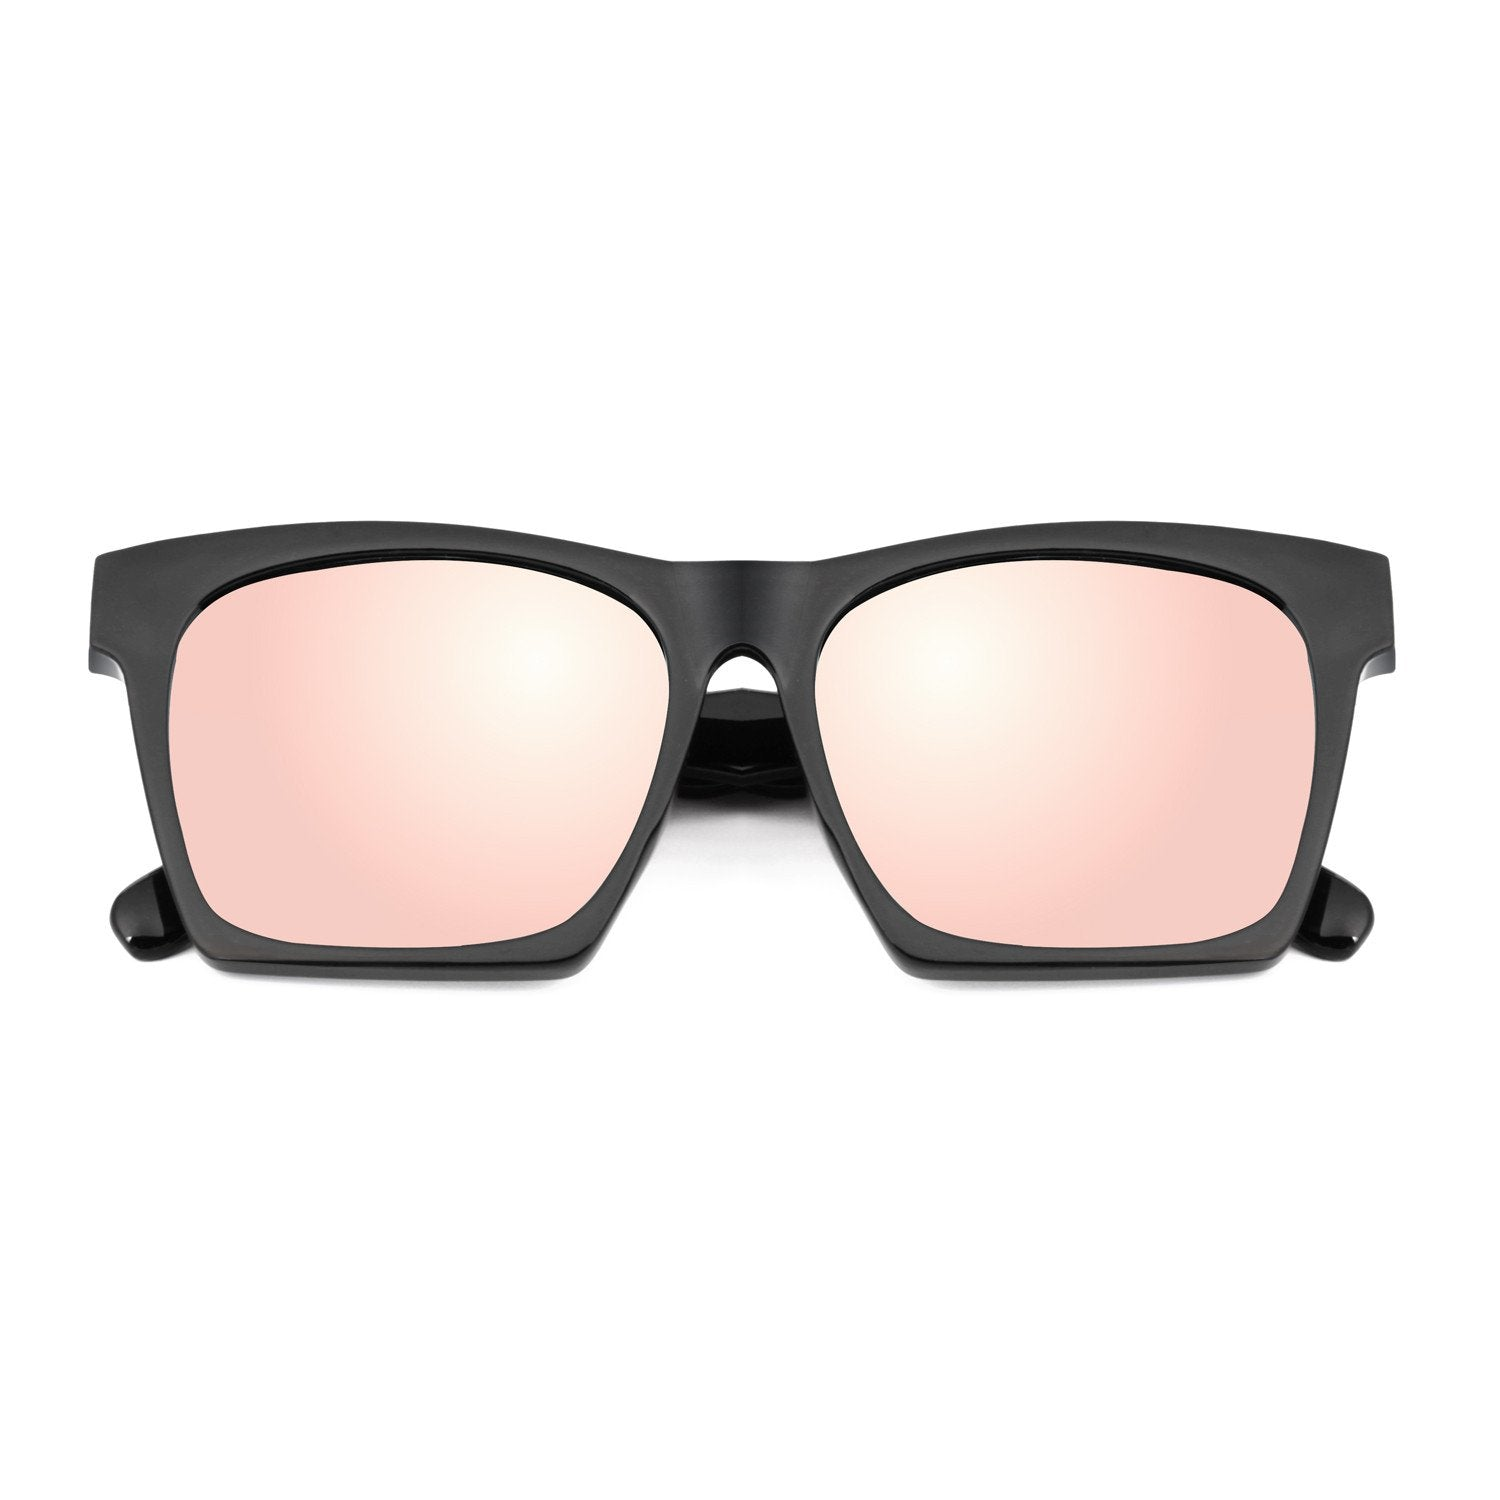 AKGSquare Polarized Sunglasses 17059 - CrystalHill